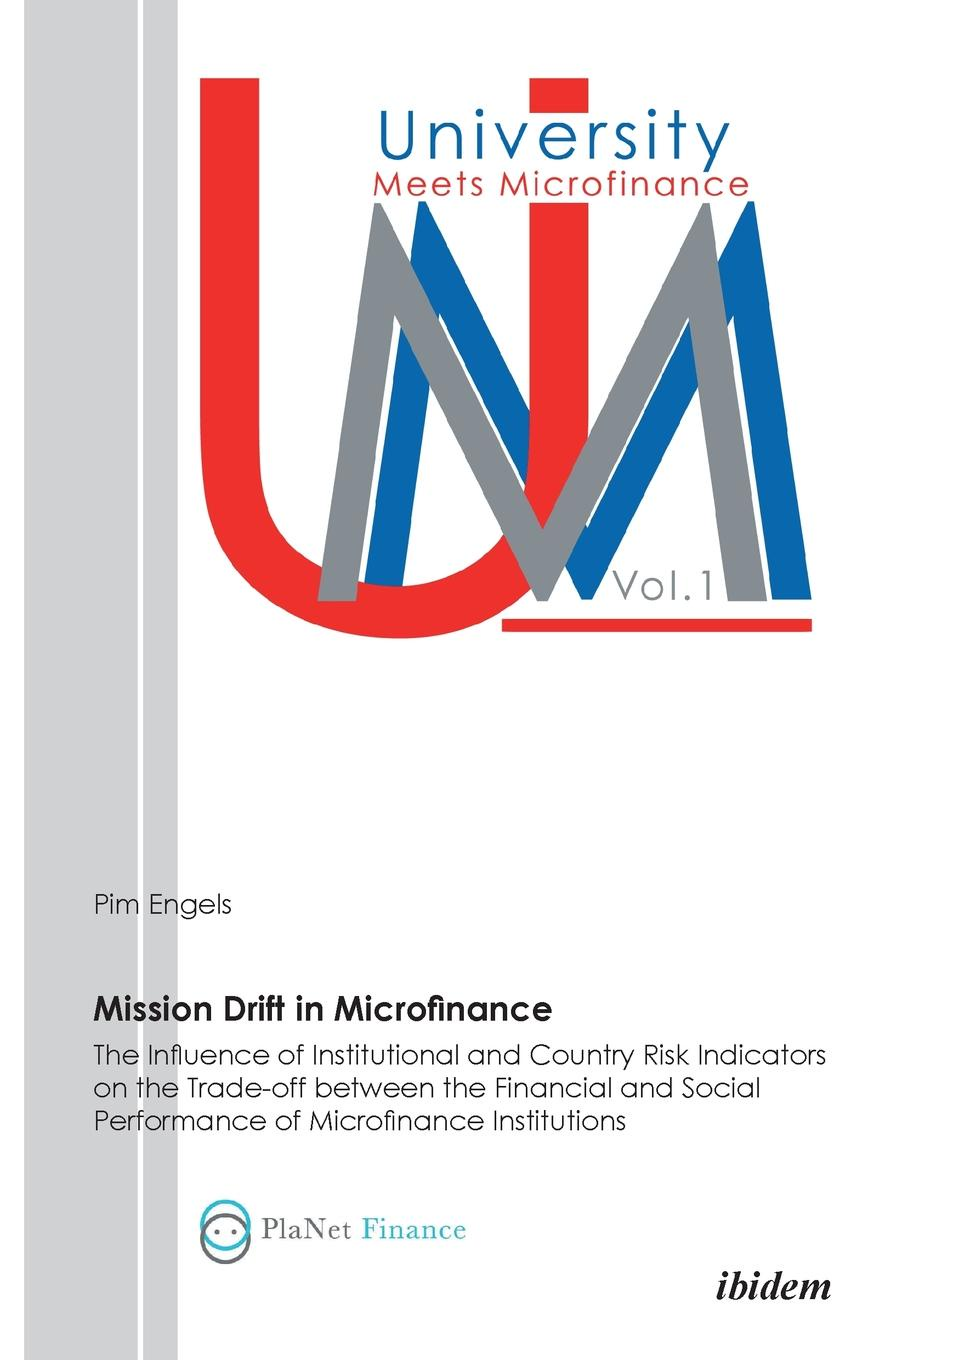 купить Pim Engels Mission Drift in Microfinance. The Influence of Institutional and Country Risk Indicators on the Trade-Off between the Financial and Social Performance of Microfinance Institutions по цене 2839 рублей